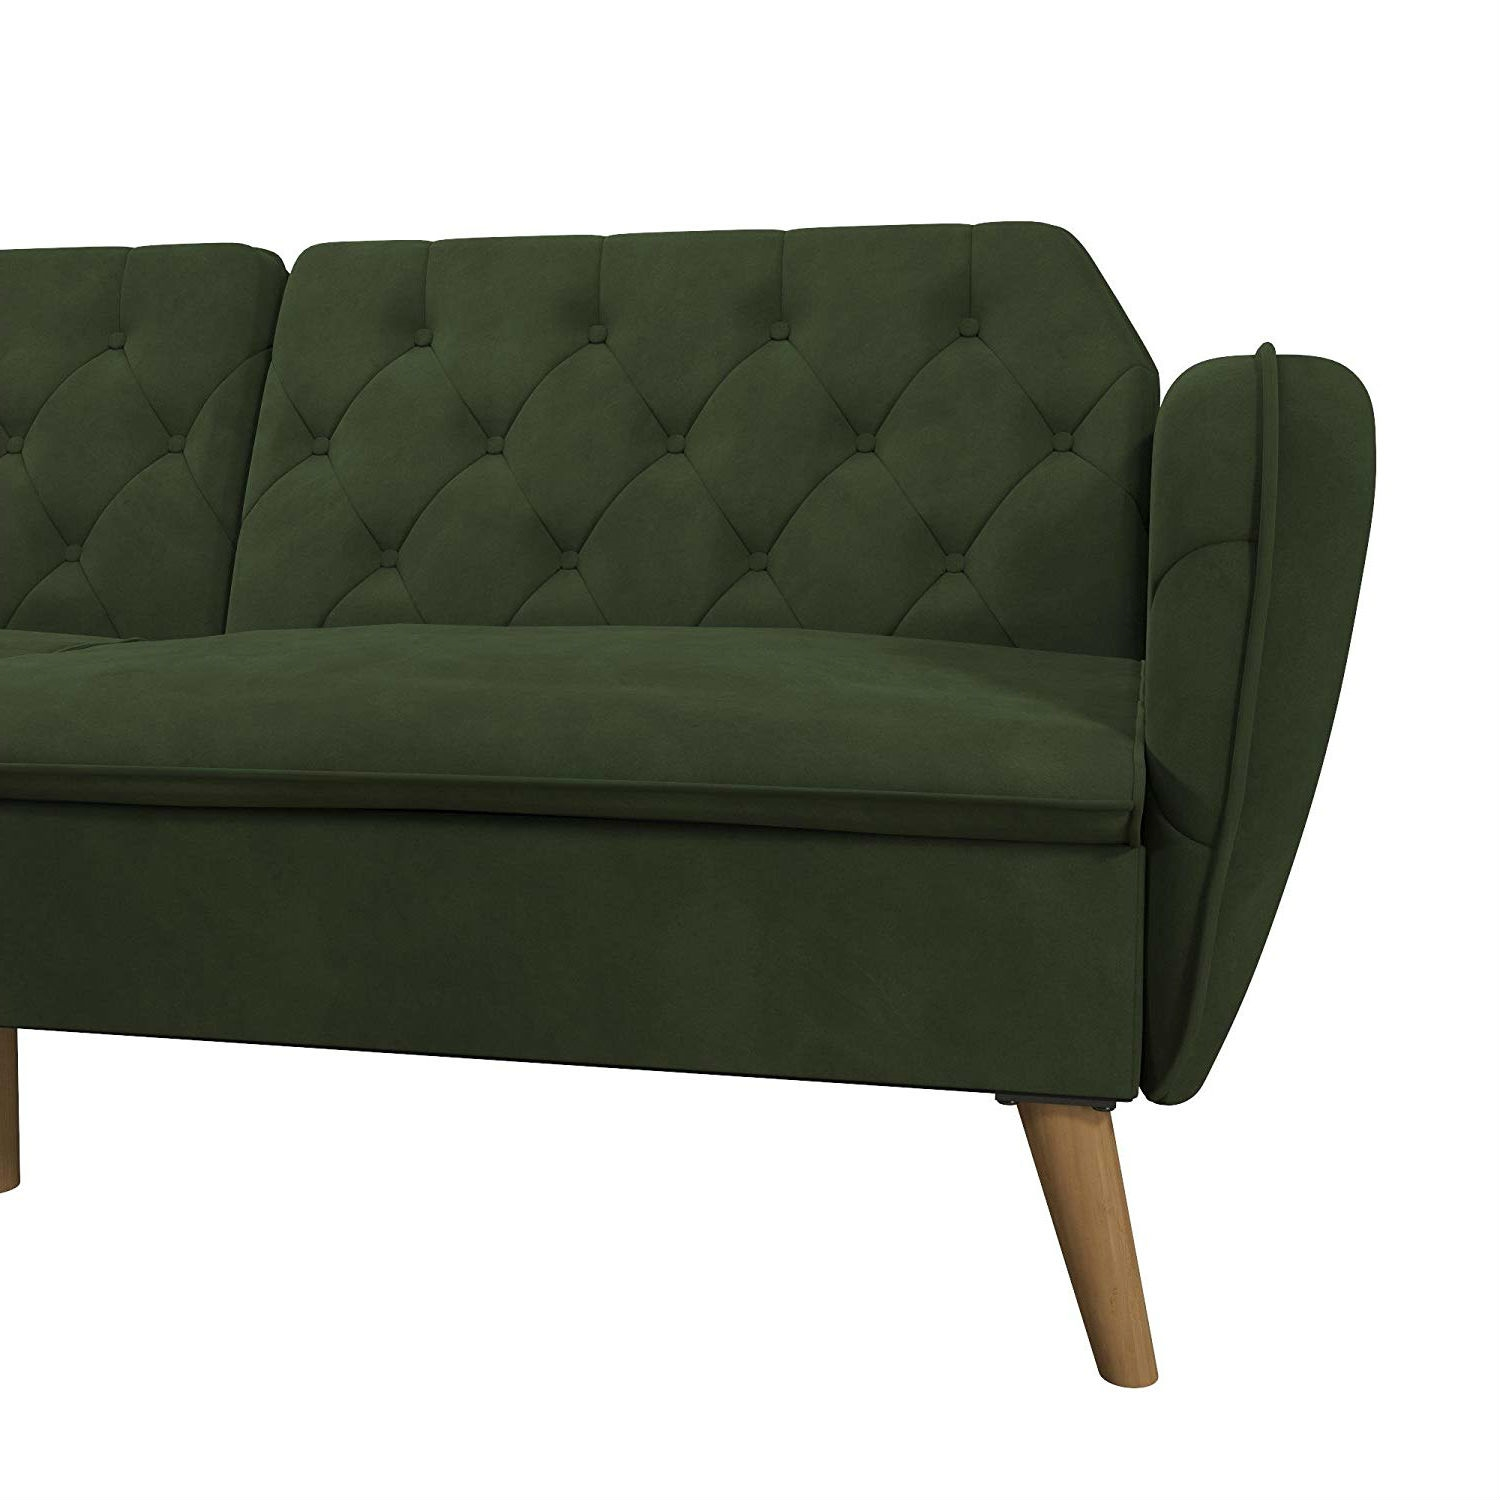 Memory Foam Futon Sofa Bed With Green Velvet Upholstery And Wood